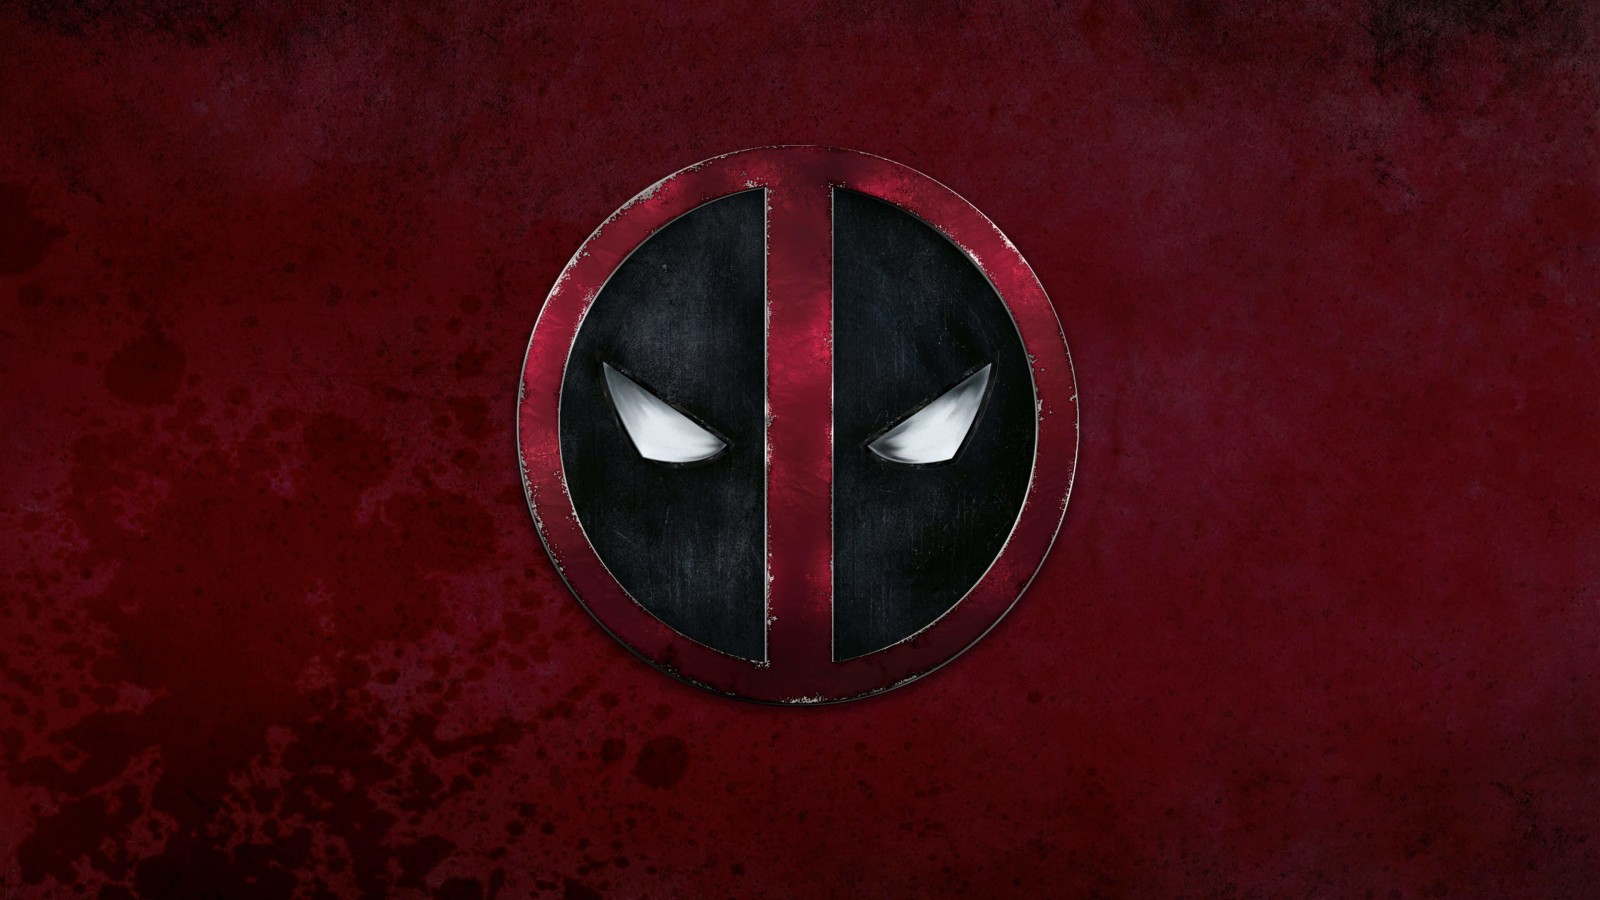 Deadpool Logo Wallpaper for Desktop 1600x900